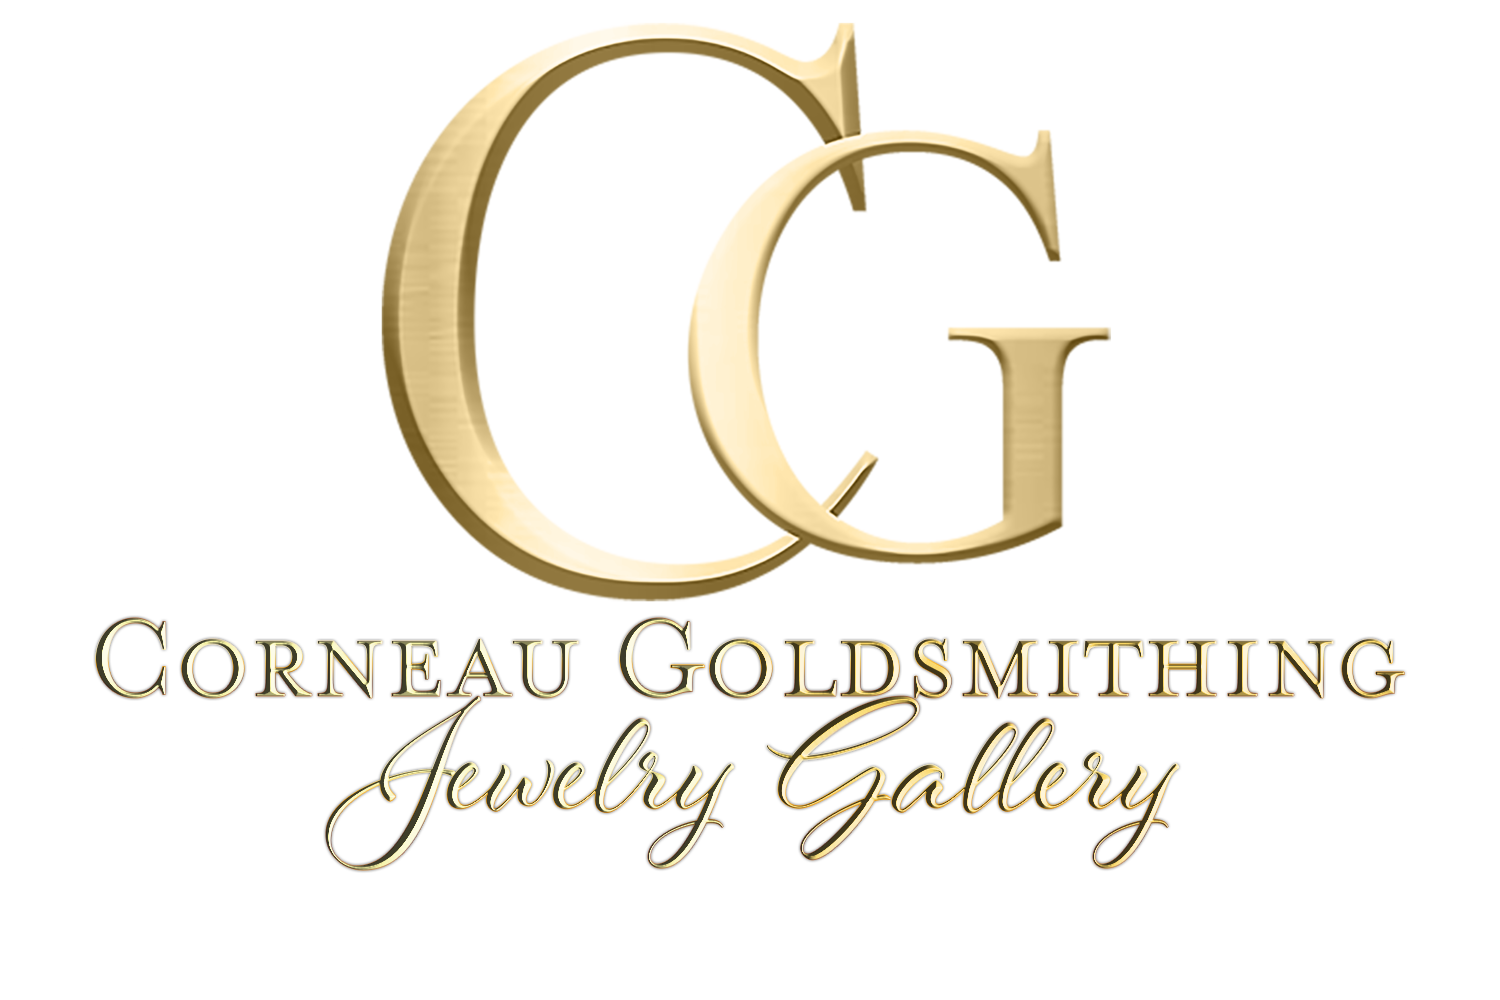 Corneau Goldsmithing Jewelry Gallery